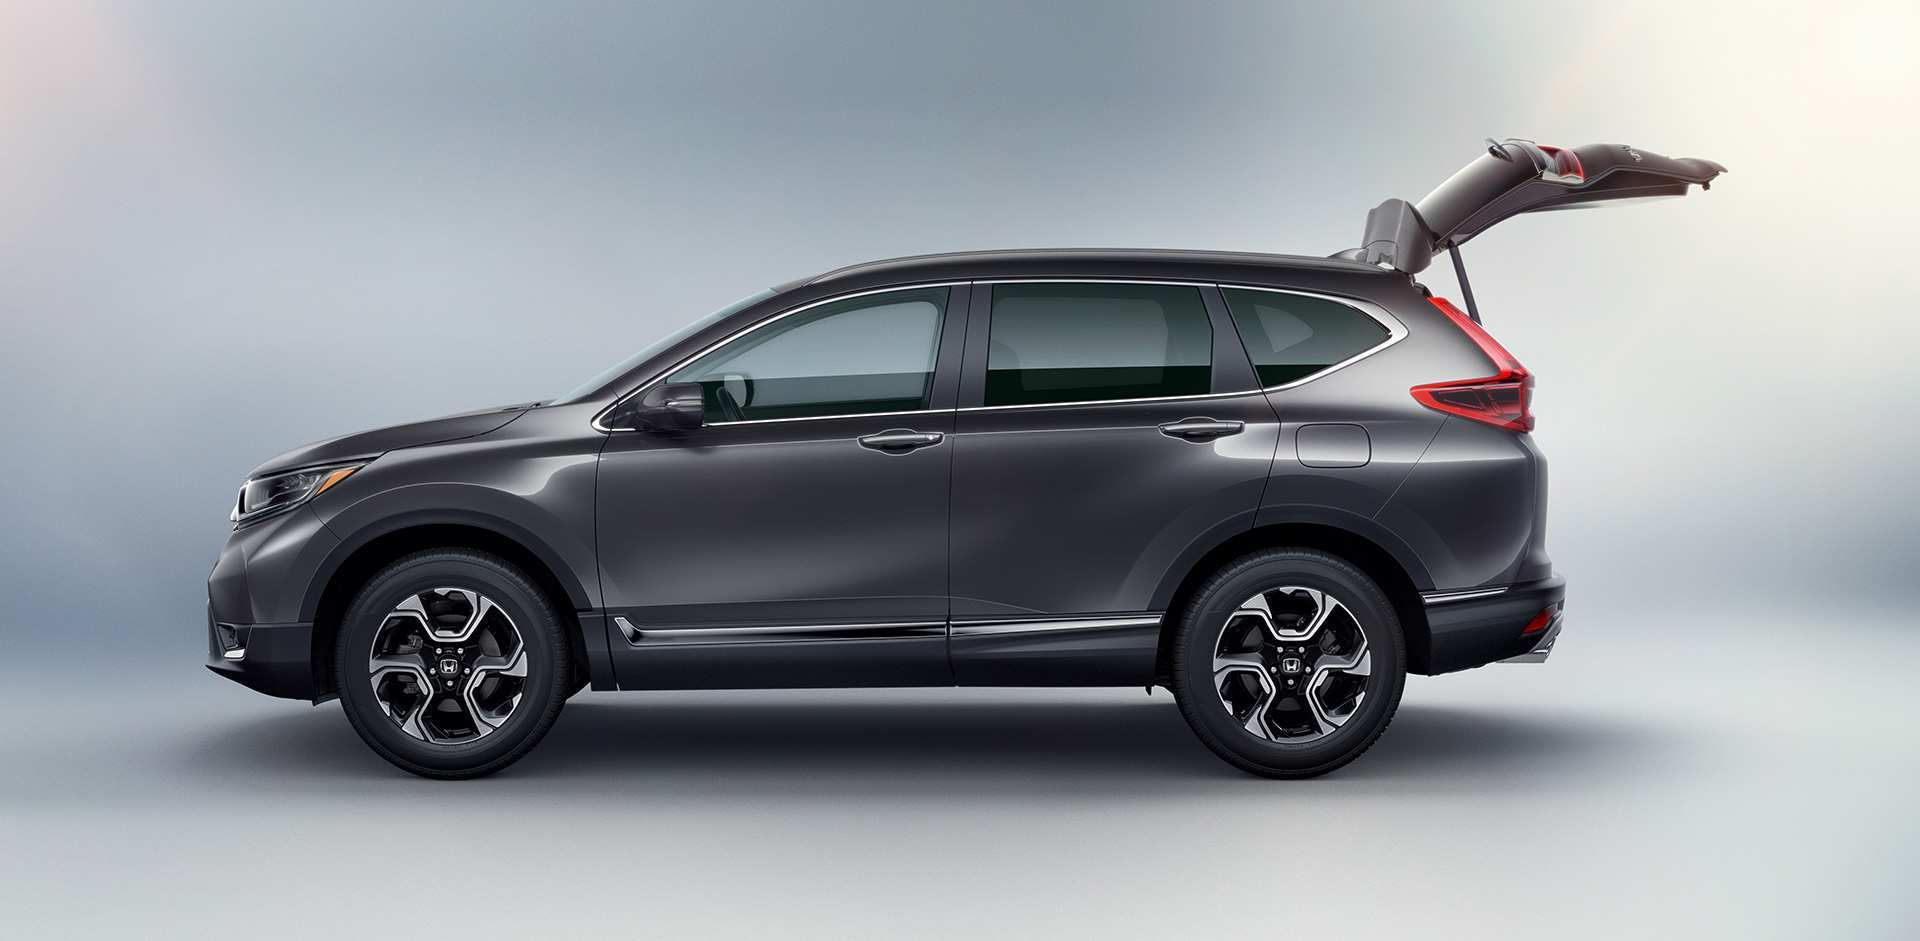 34 Great Best Honda Crv 2019 Price In Qatar Review And Price Photos by Best Honda Crv 2019 Price In Qatar Review And Price